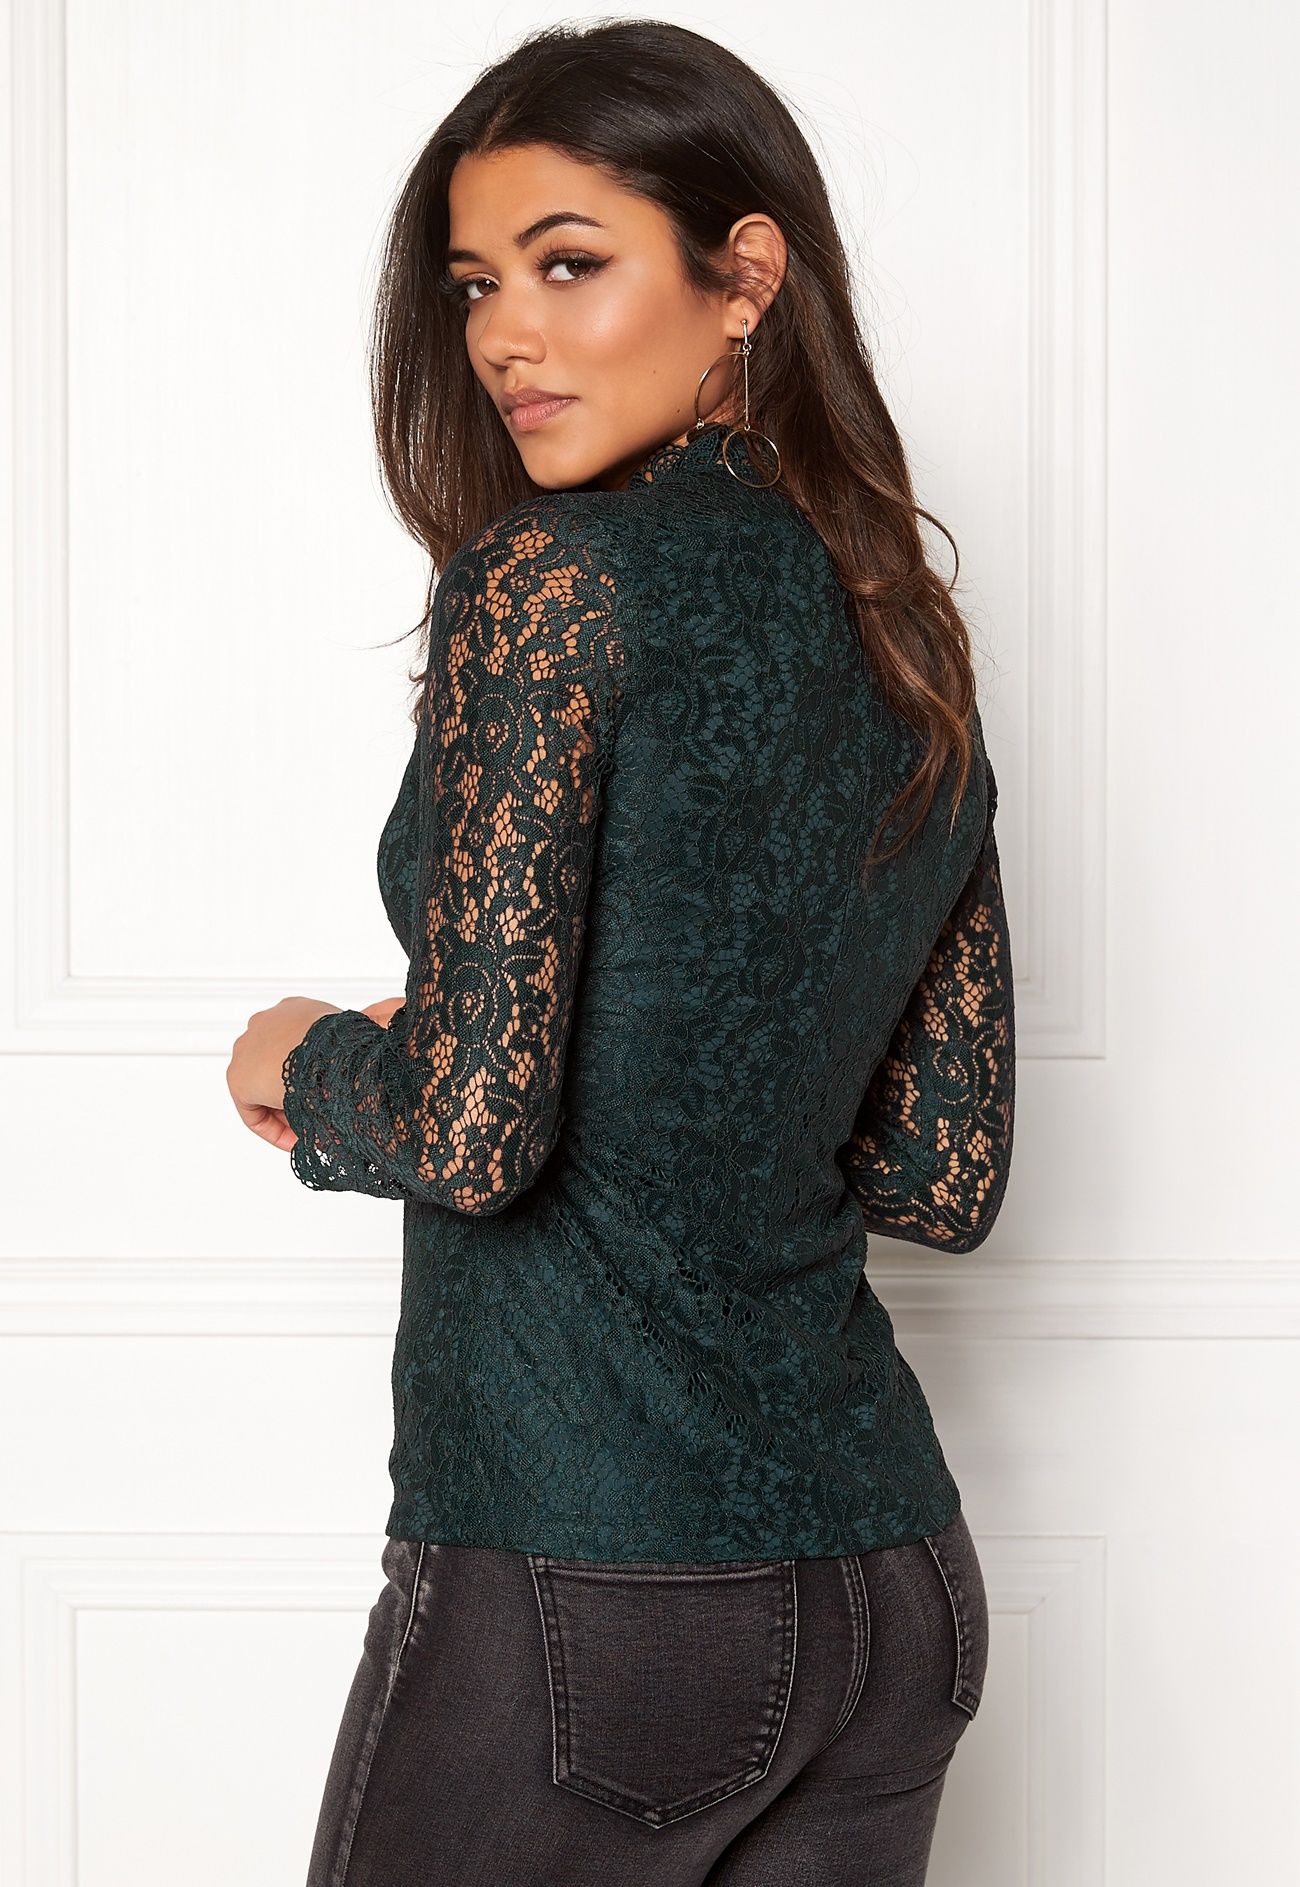 DRY LAKE Mysticus Blouse Dark Green Lace - Bubbleroom